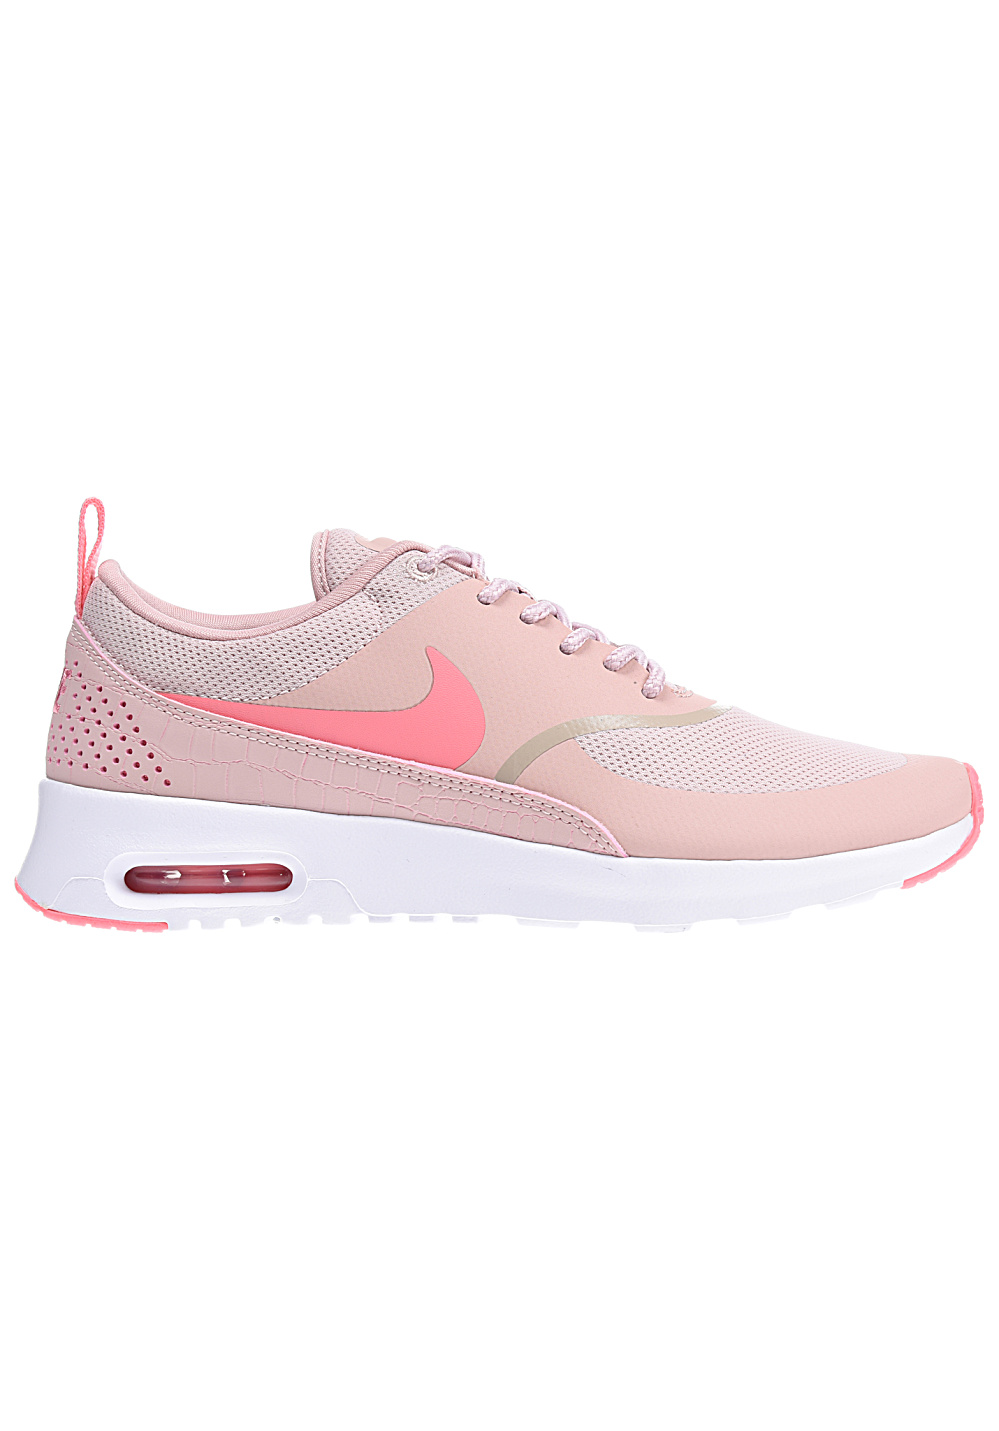 ... Trainers · NIKE SPORTSWEAR Air Max Thea - Sneakers for Women - Pink.  Previous